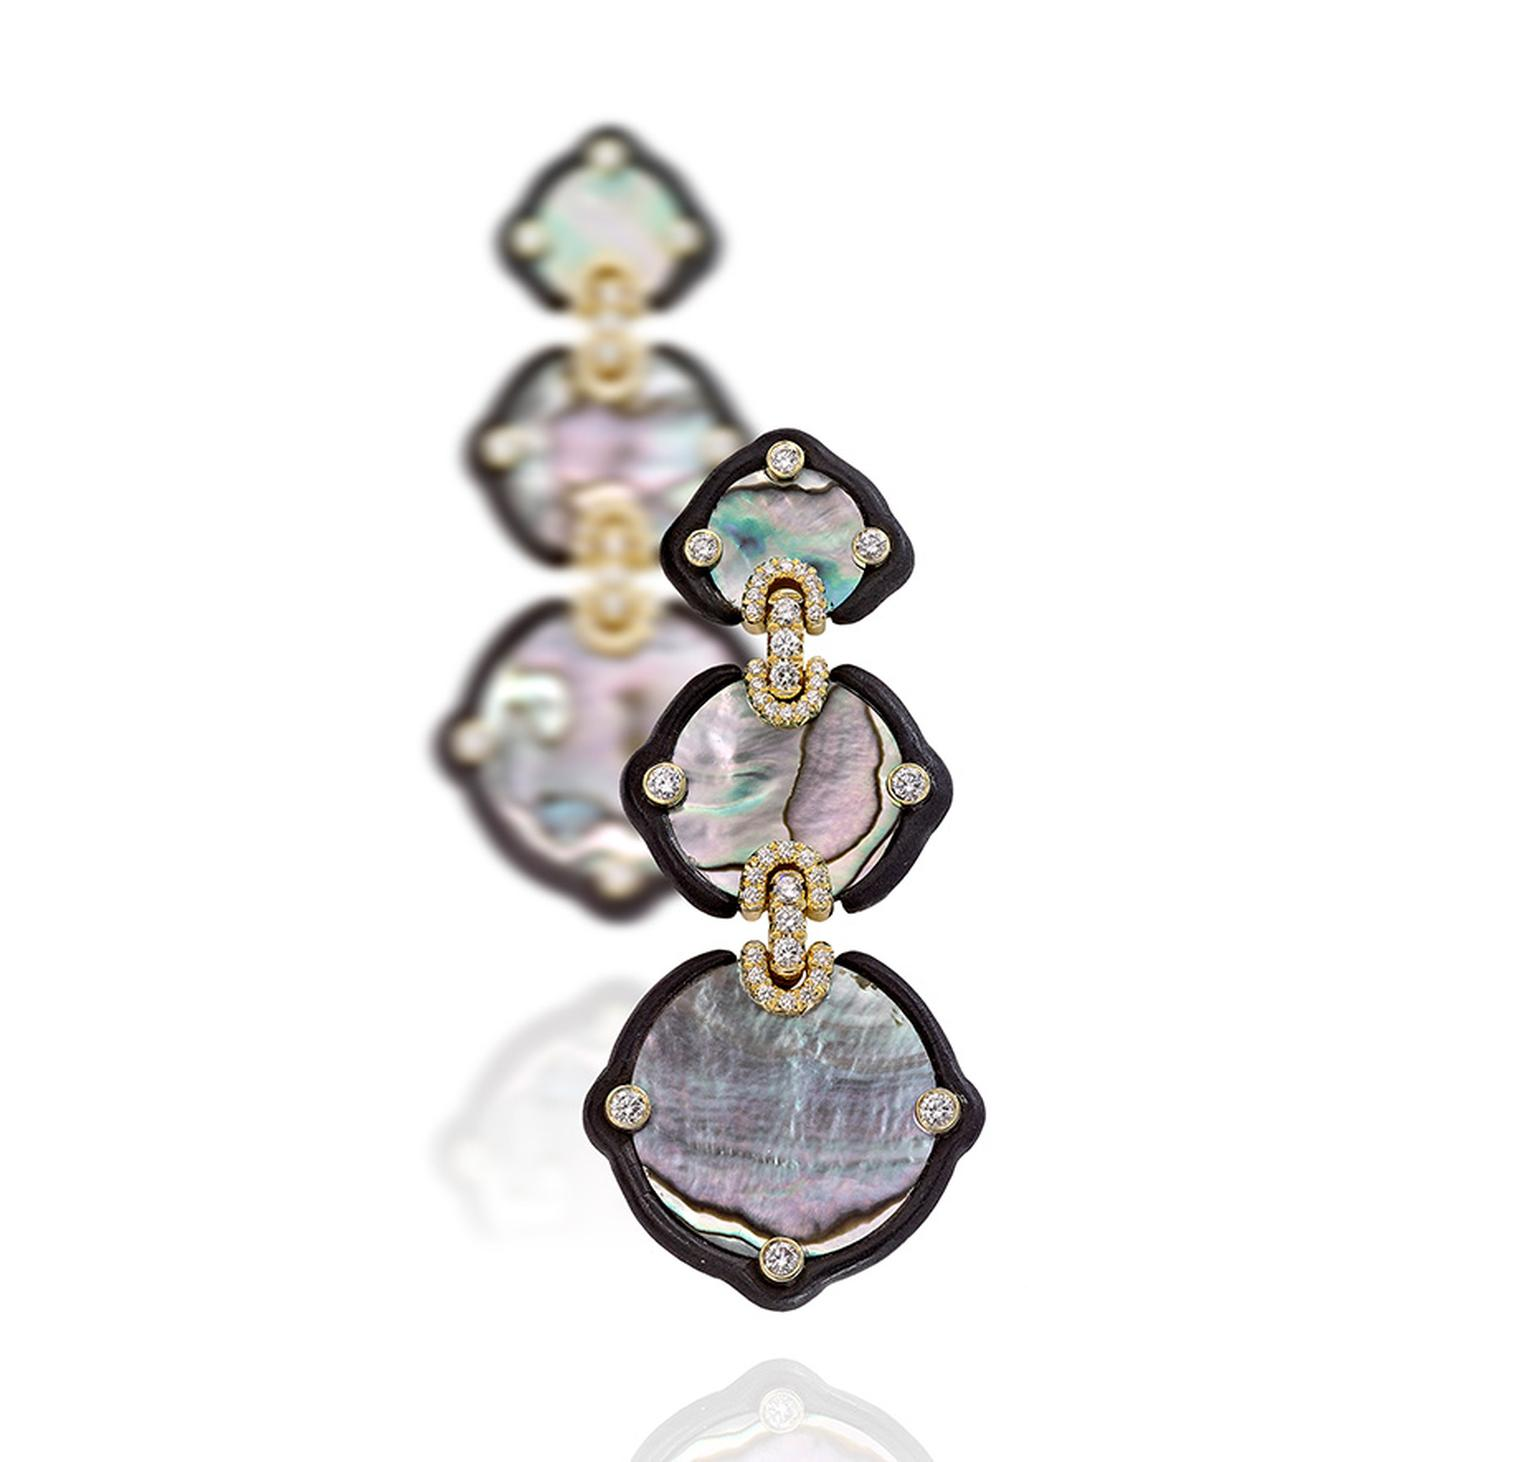 Nicholas Varney 2012 mother-of-pearl, ebony, diamond and gold earrings.